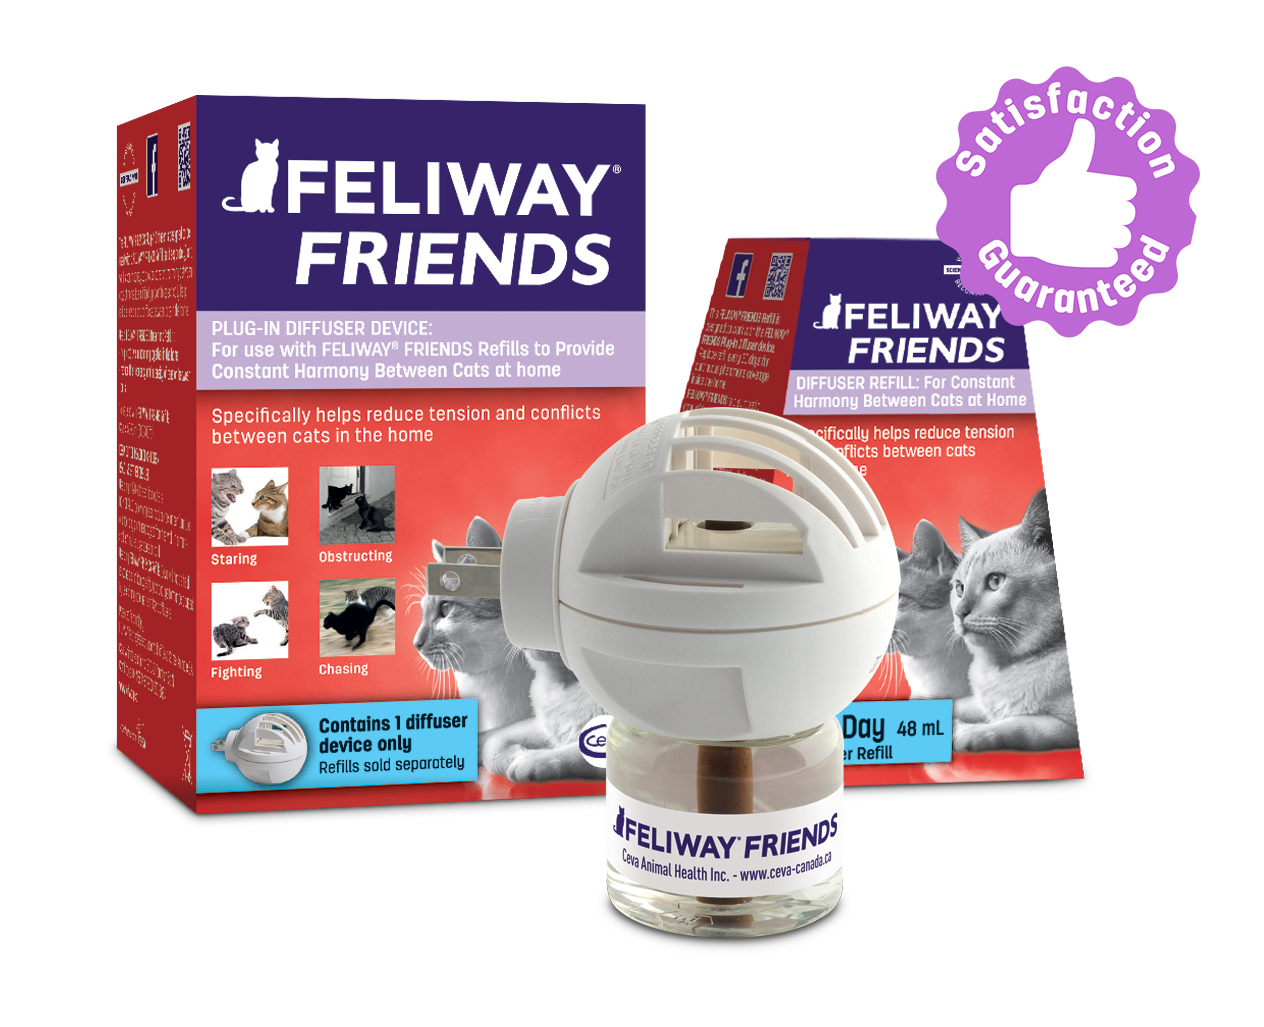 Feliway Friends diffuser for cats